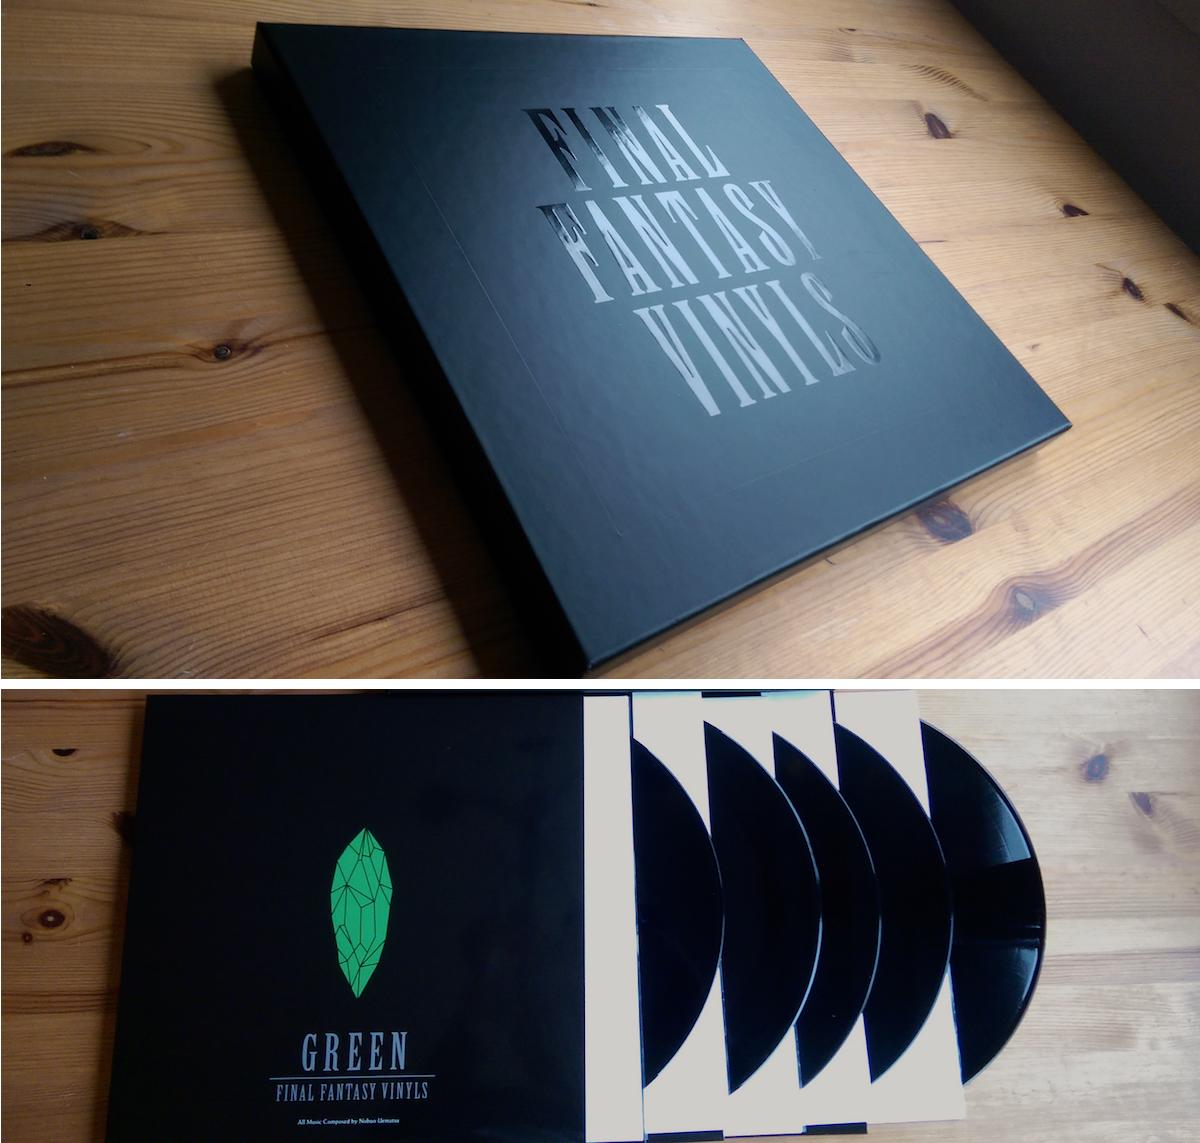 Final Fantasy Vinyls 5xLP box set